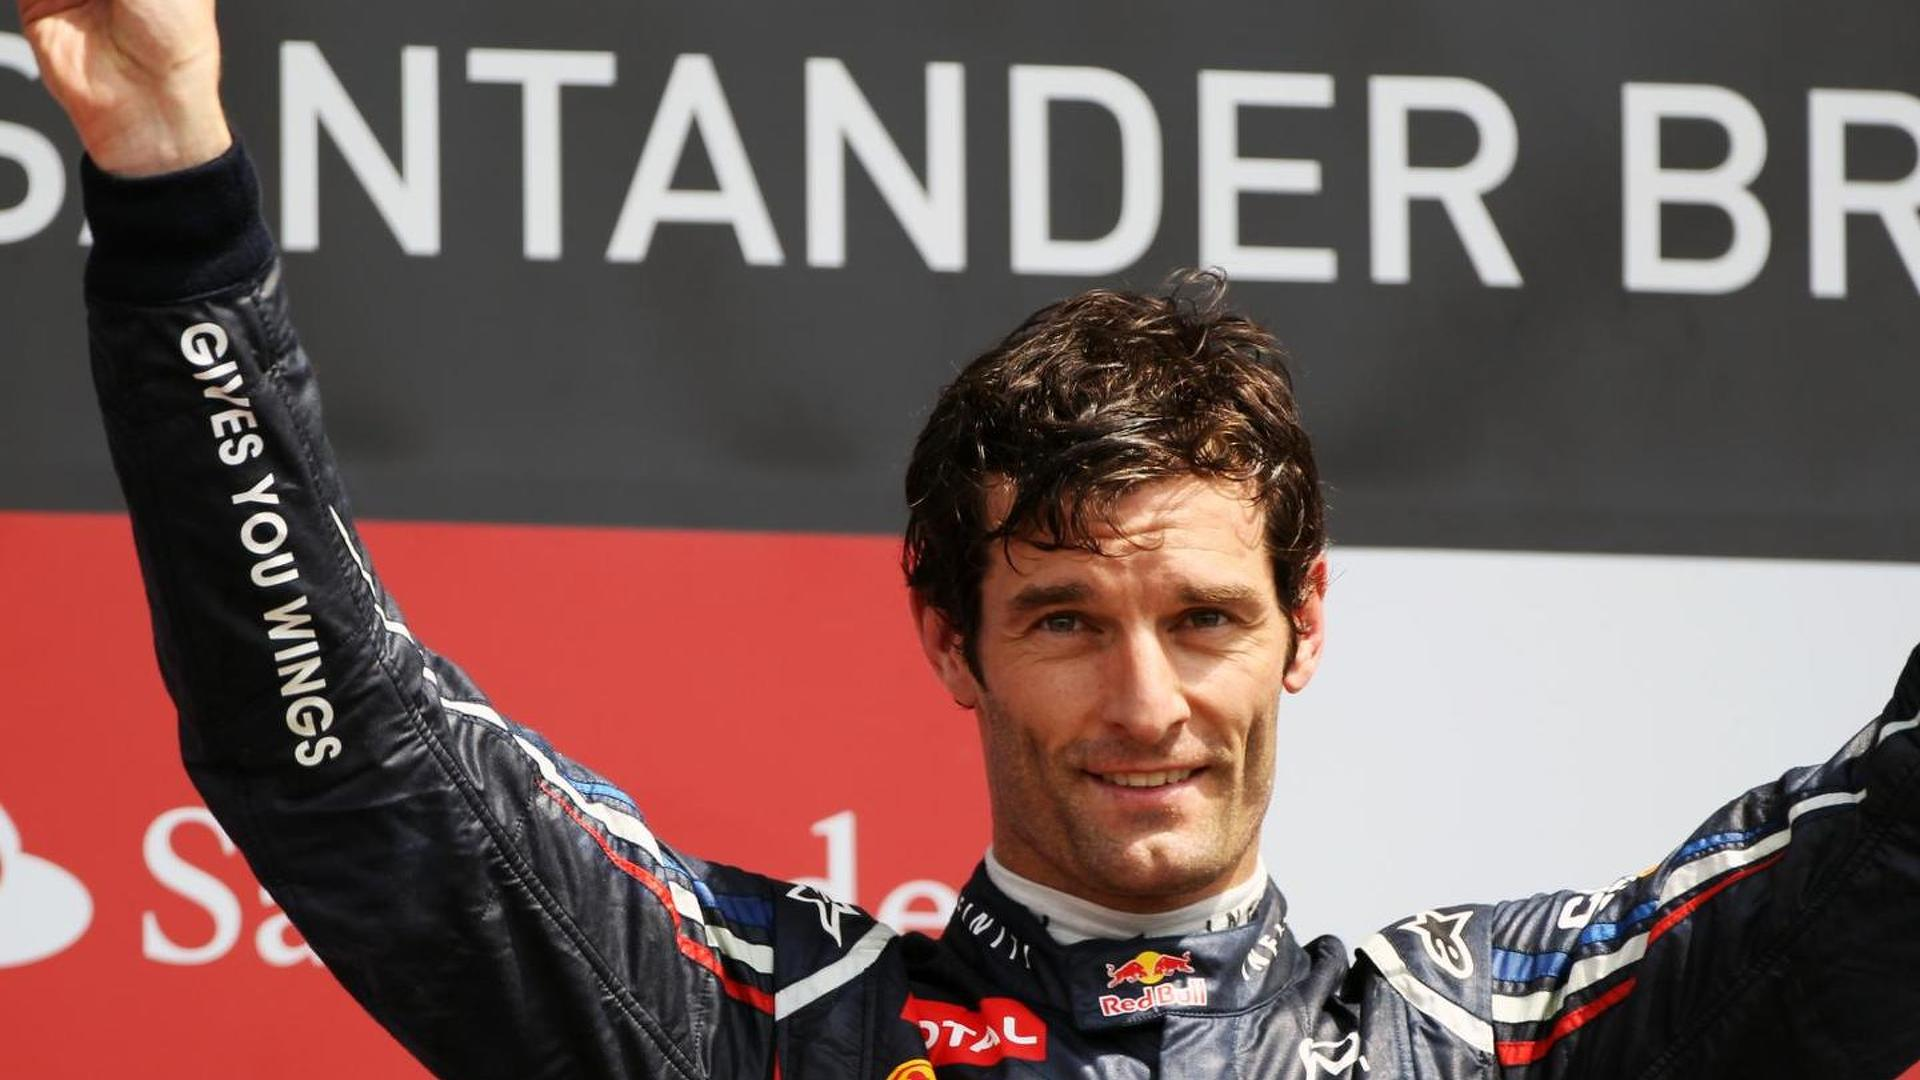 Mark Webber to quit F1 at end of season